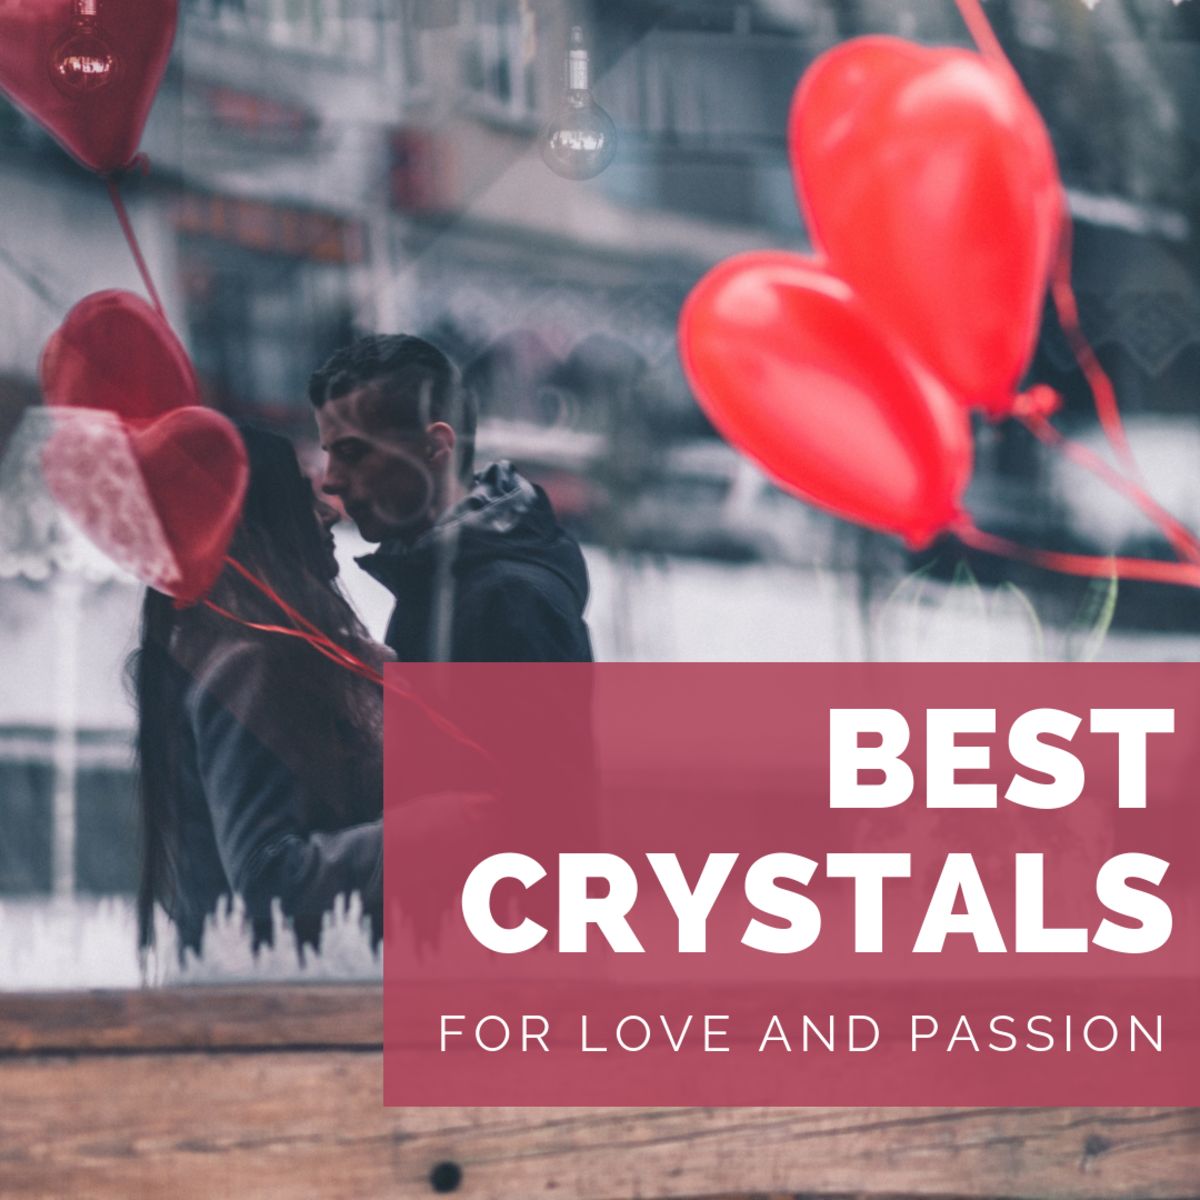 6 Best Crystals and Stones for Love and Passion